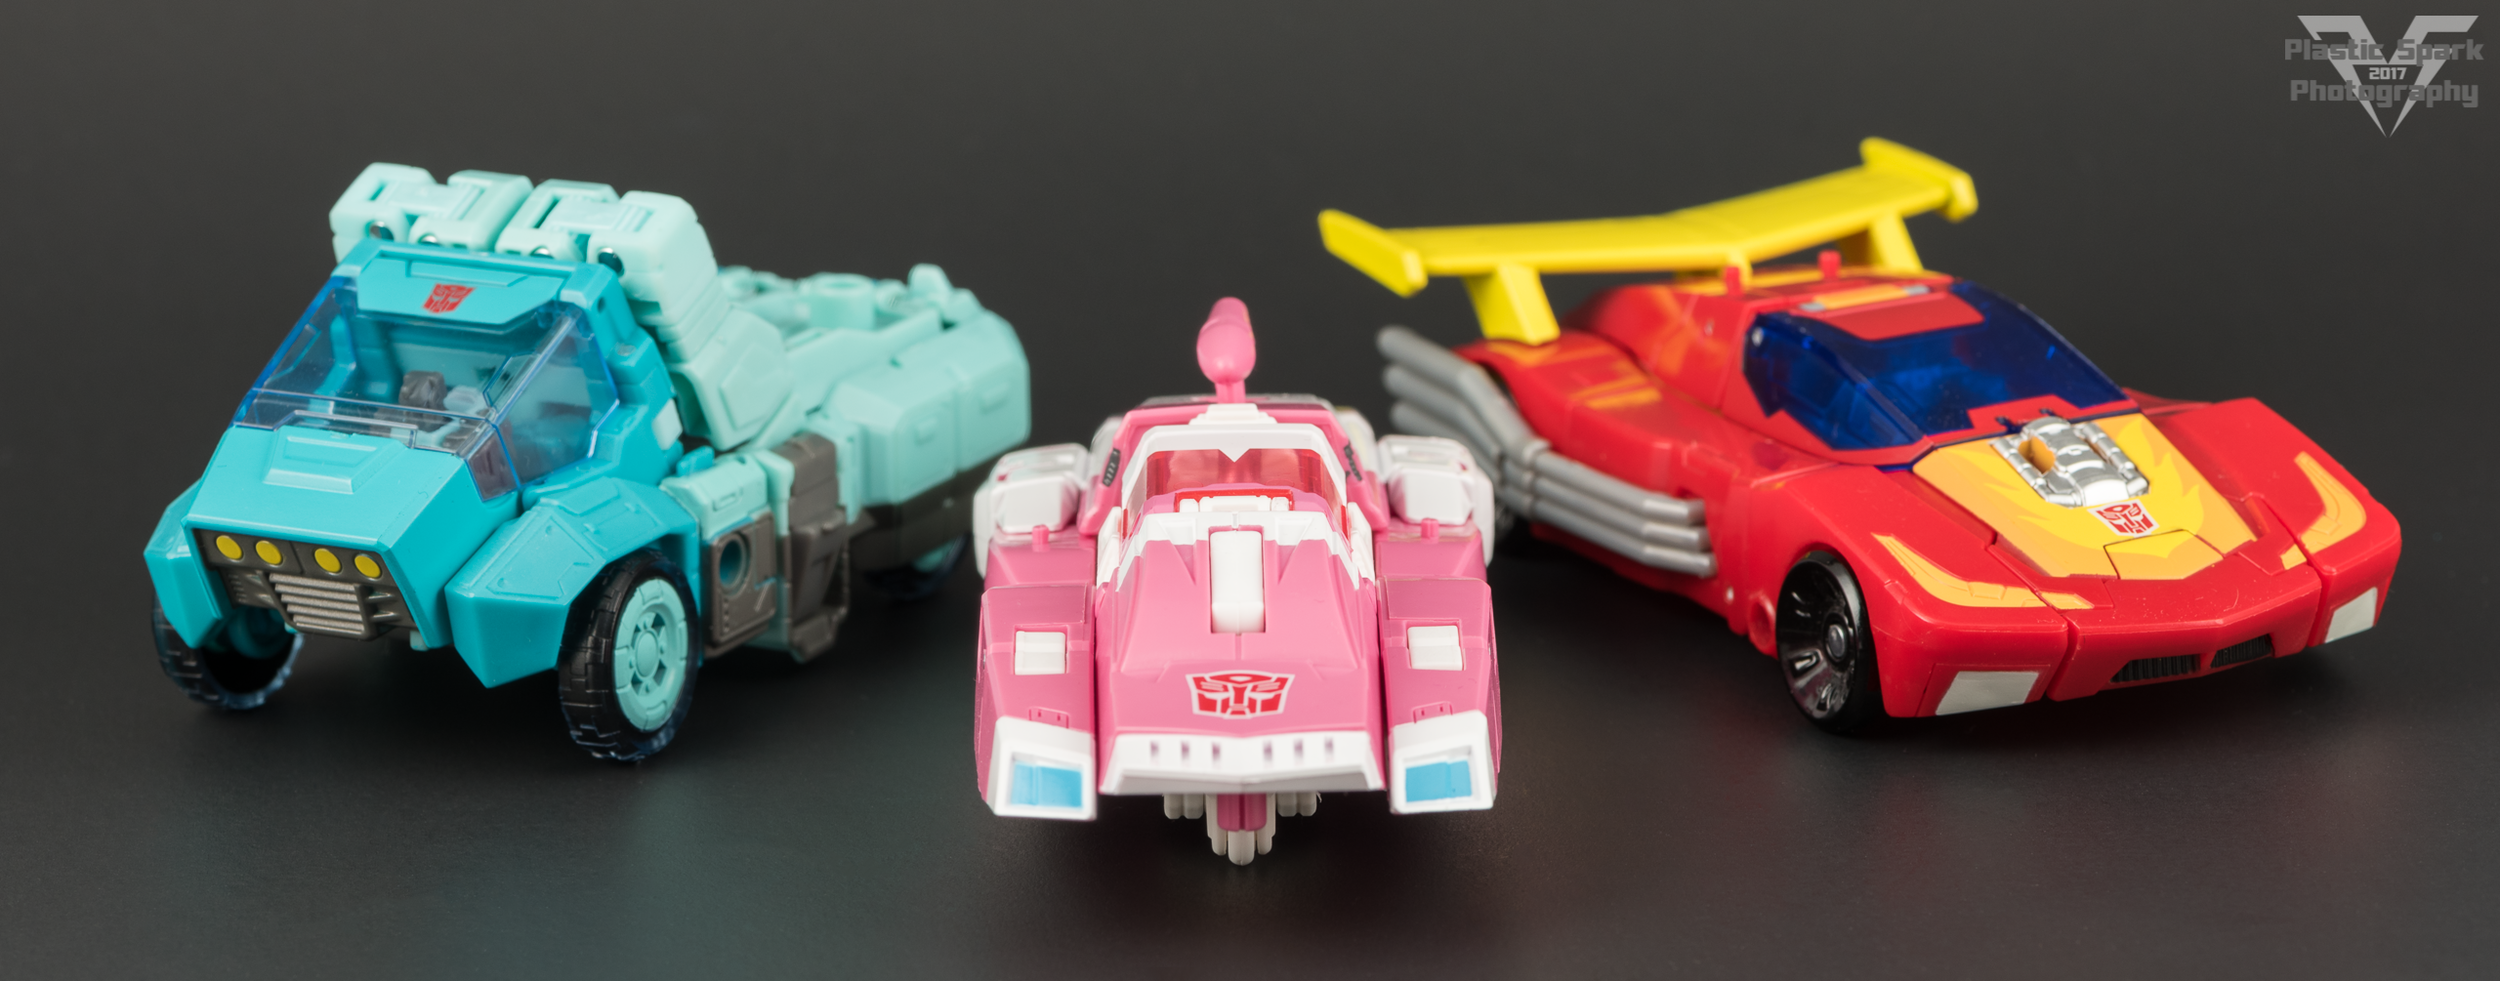 Hascon-Arcee-(6-of-11).png